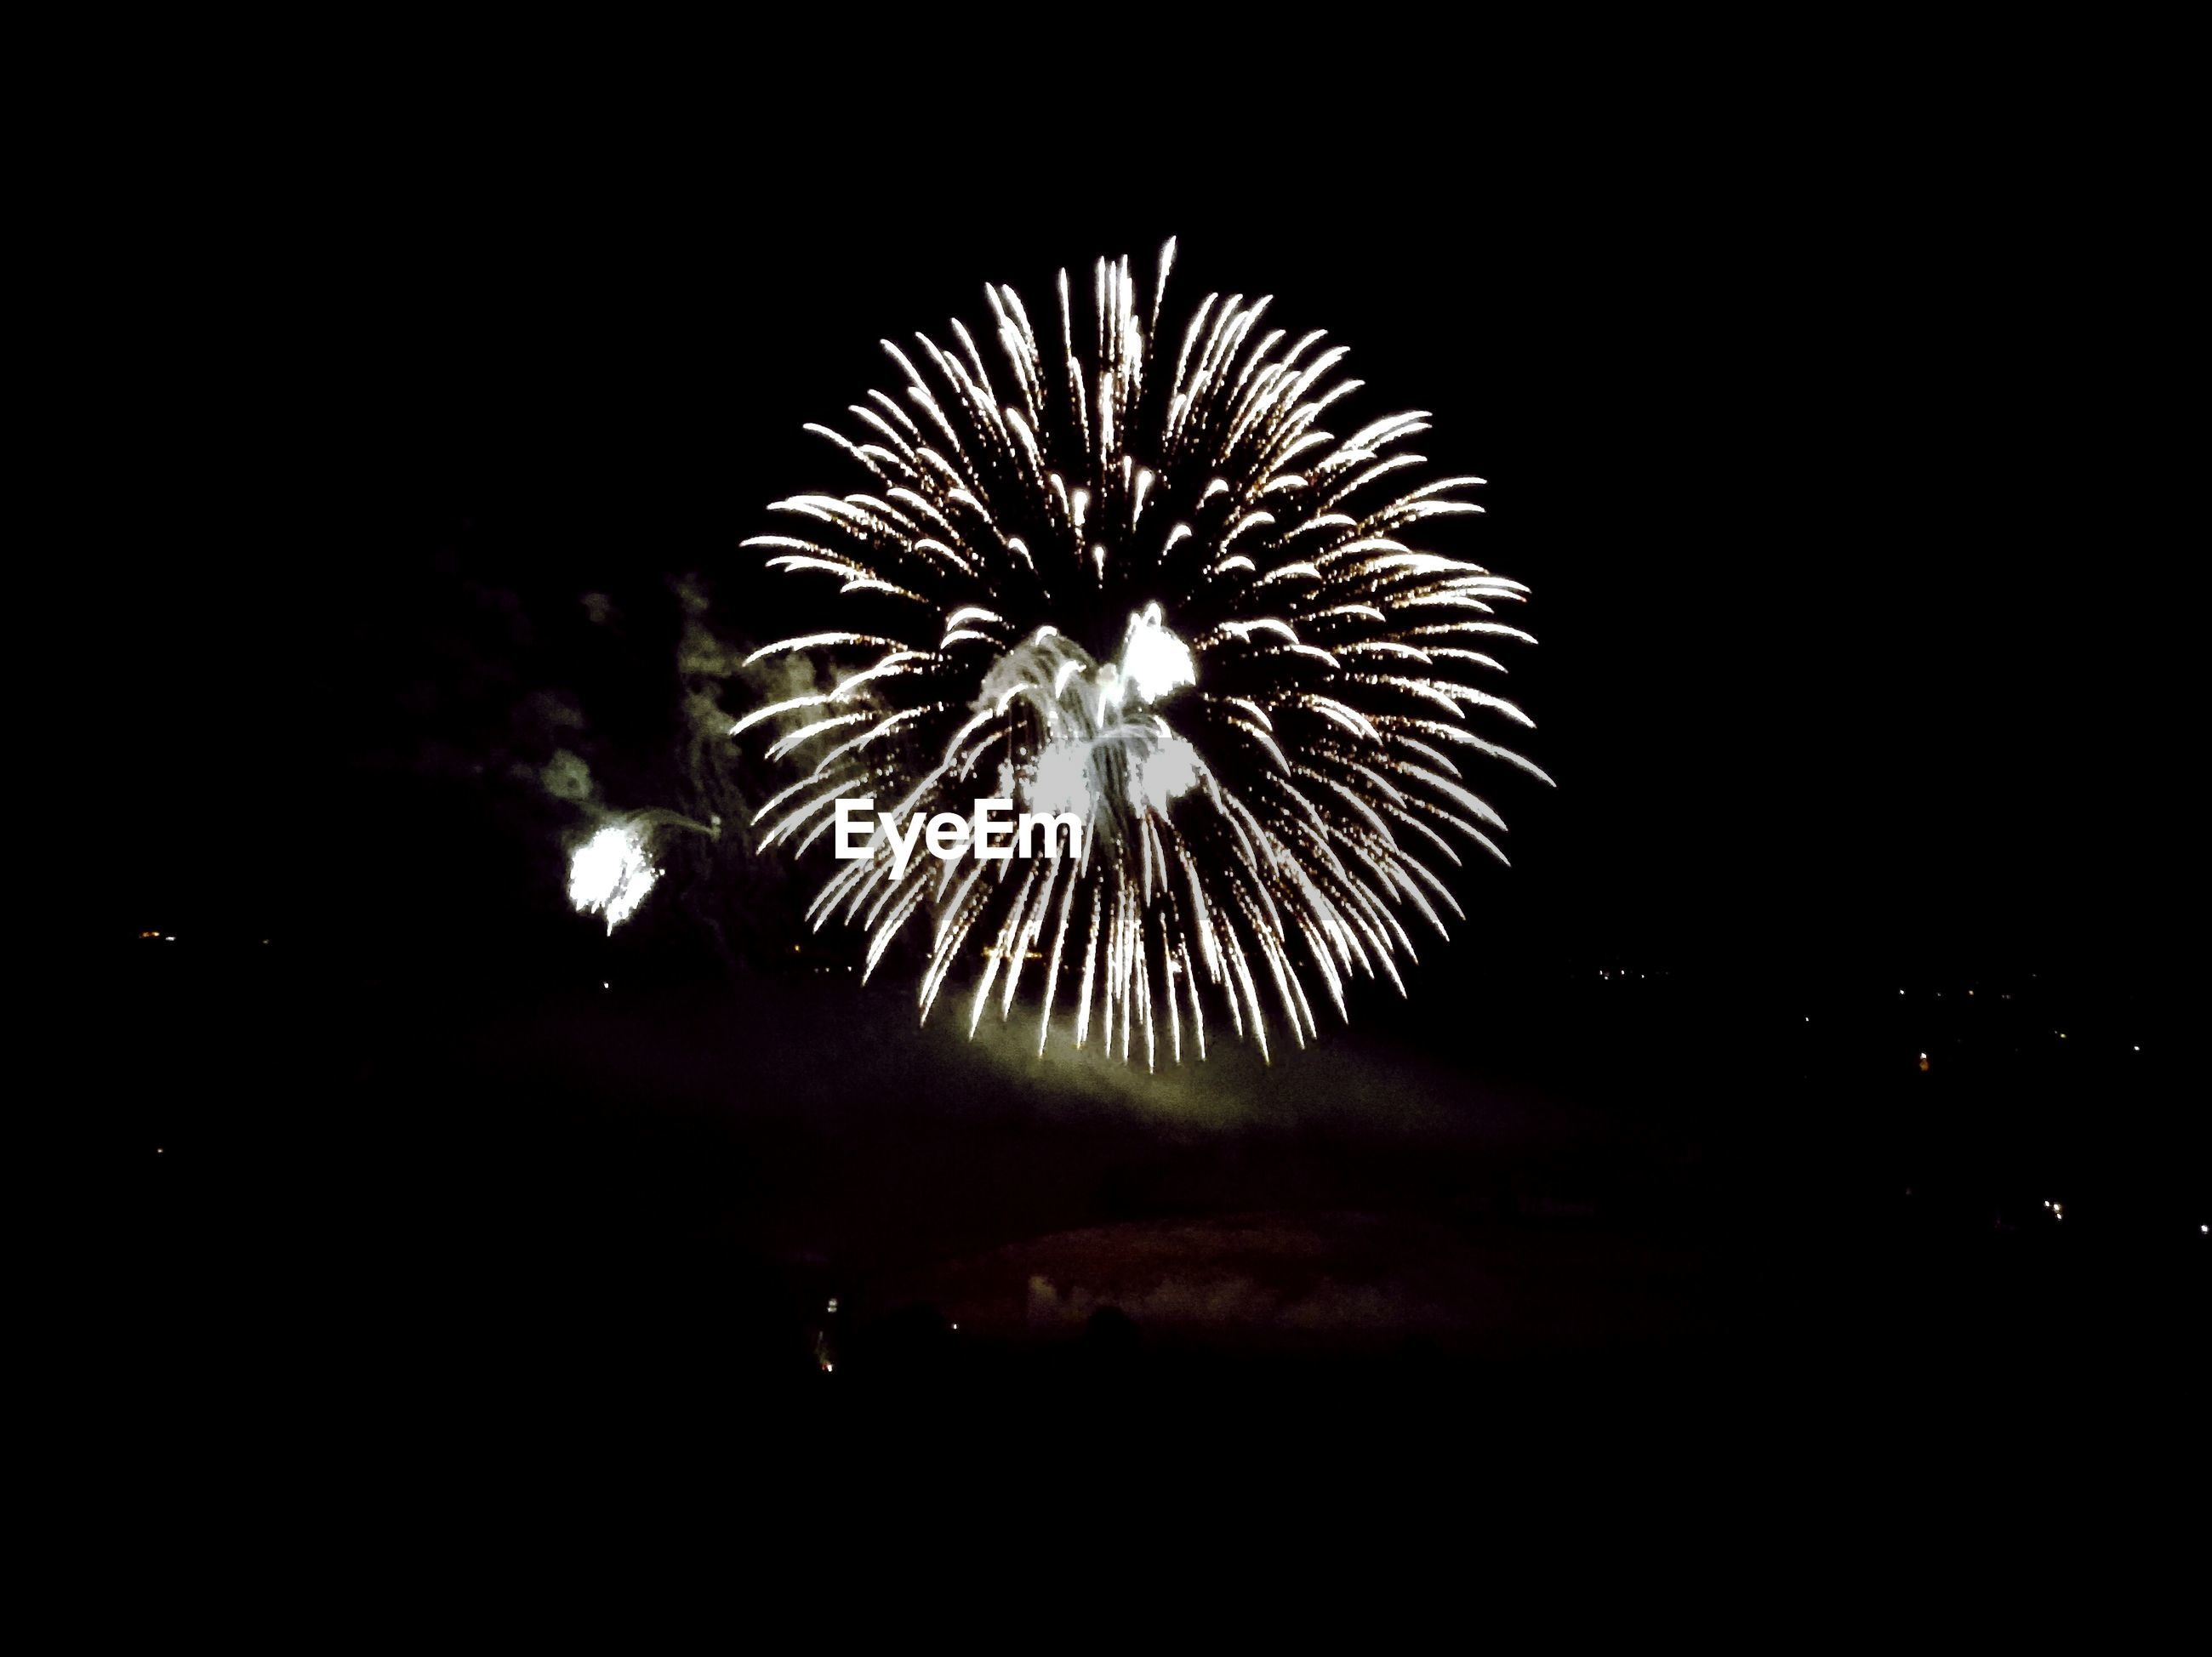 night, firework display, illuminated, exploding, long exposure, firework - man made object, glowing, motion, celebration, low angle view, sparks, sky, arts culture and entertainment, blurred motion, firework, event, entertainment, dark, outdoors, clear sky